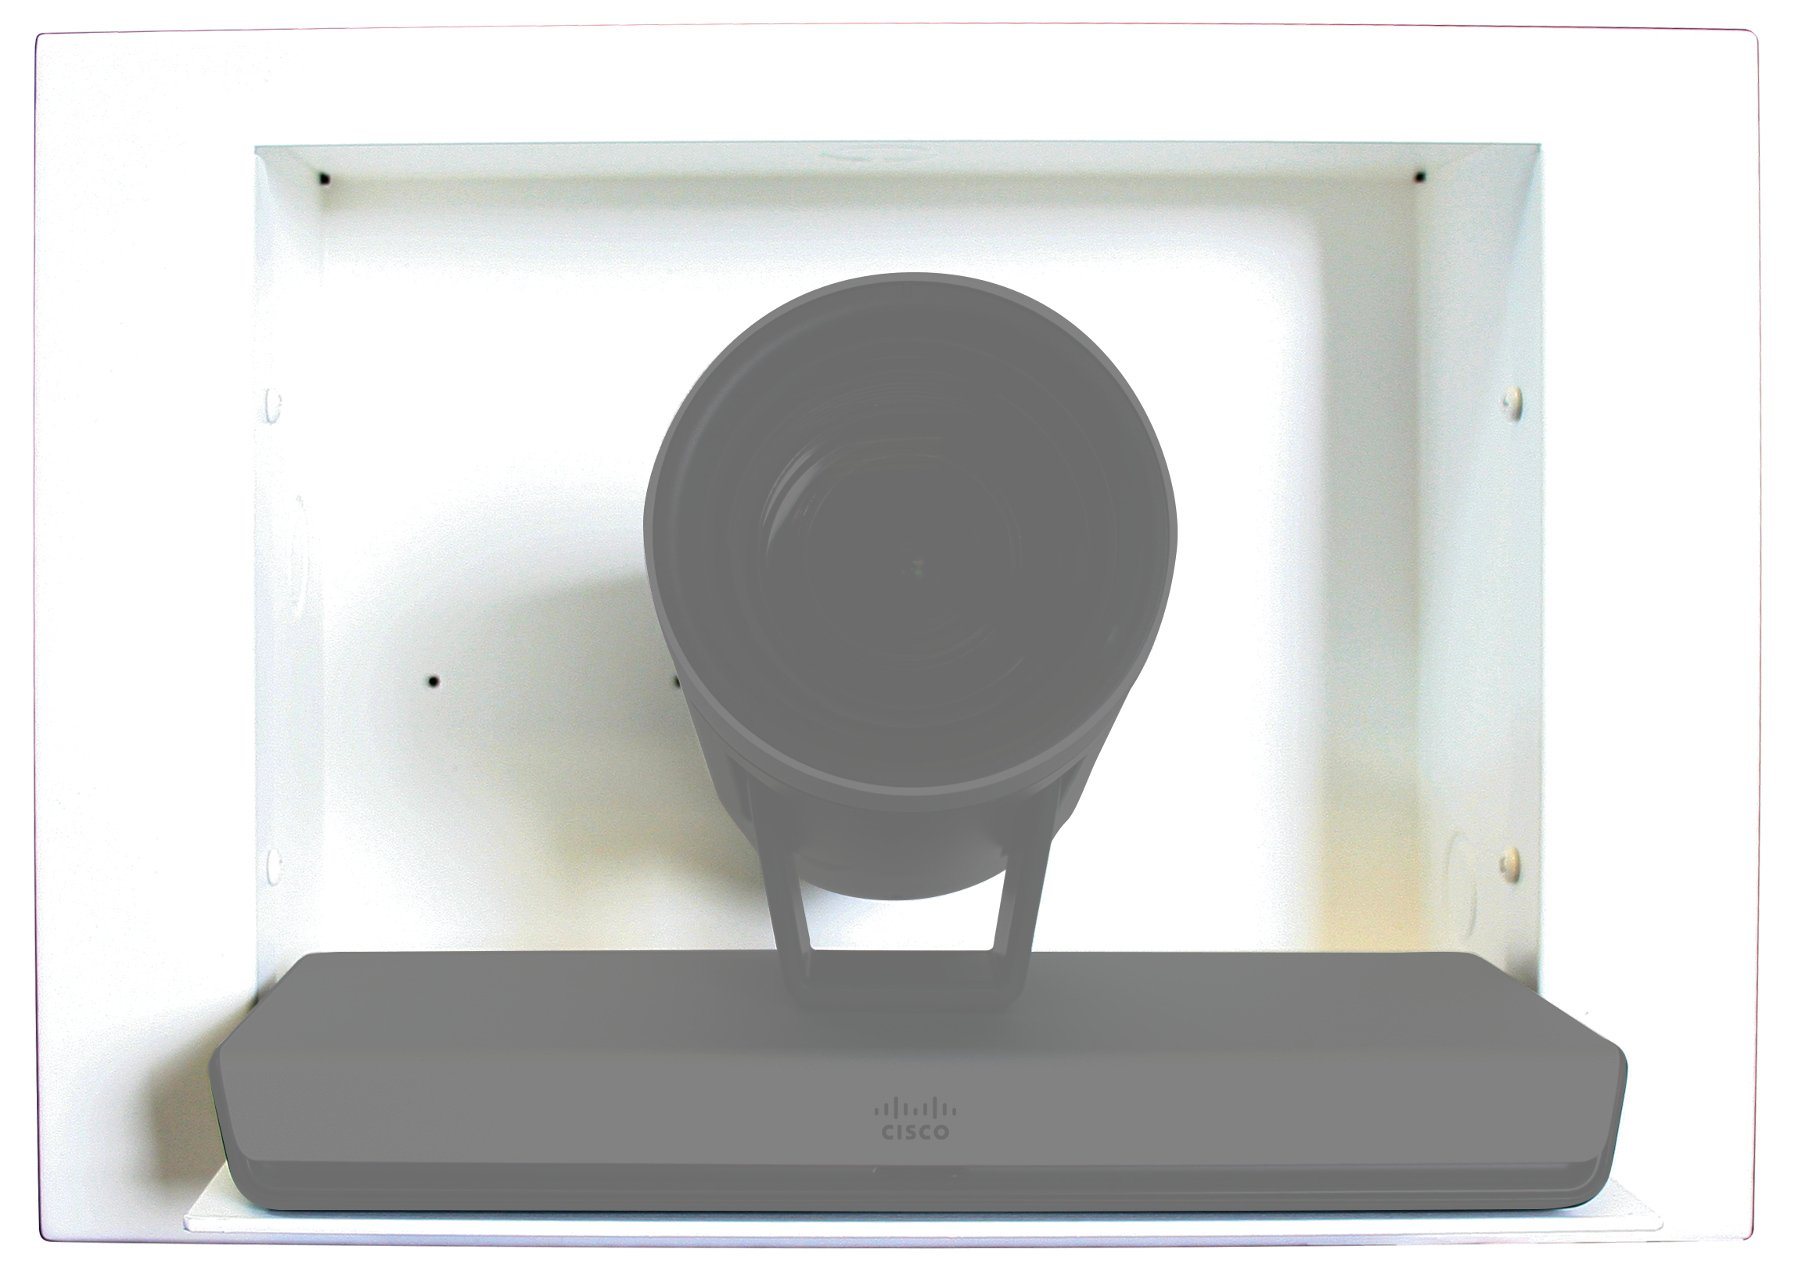 IN-Wall Enclosure for Cisco Precision 60 Cameras